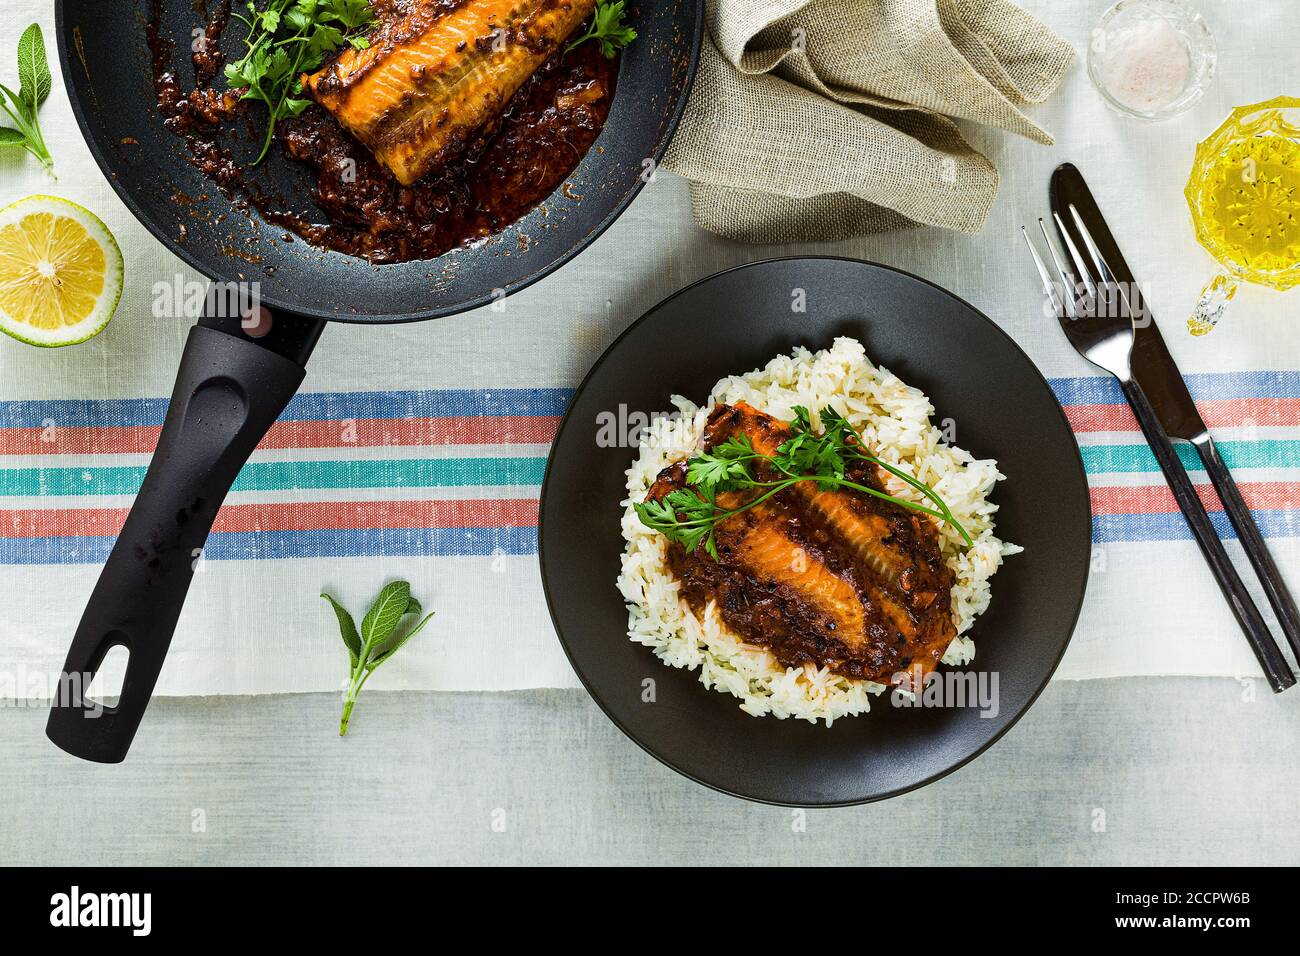 fillet of pink salmon in tomato-coconut sauce in a non-stick frying pan with parsley on a table with a linen tablecloth. healthy family food with basm Stock Photo